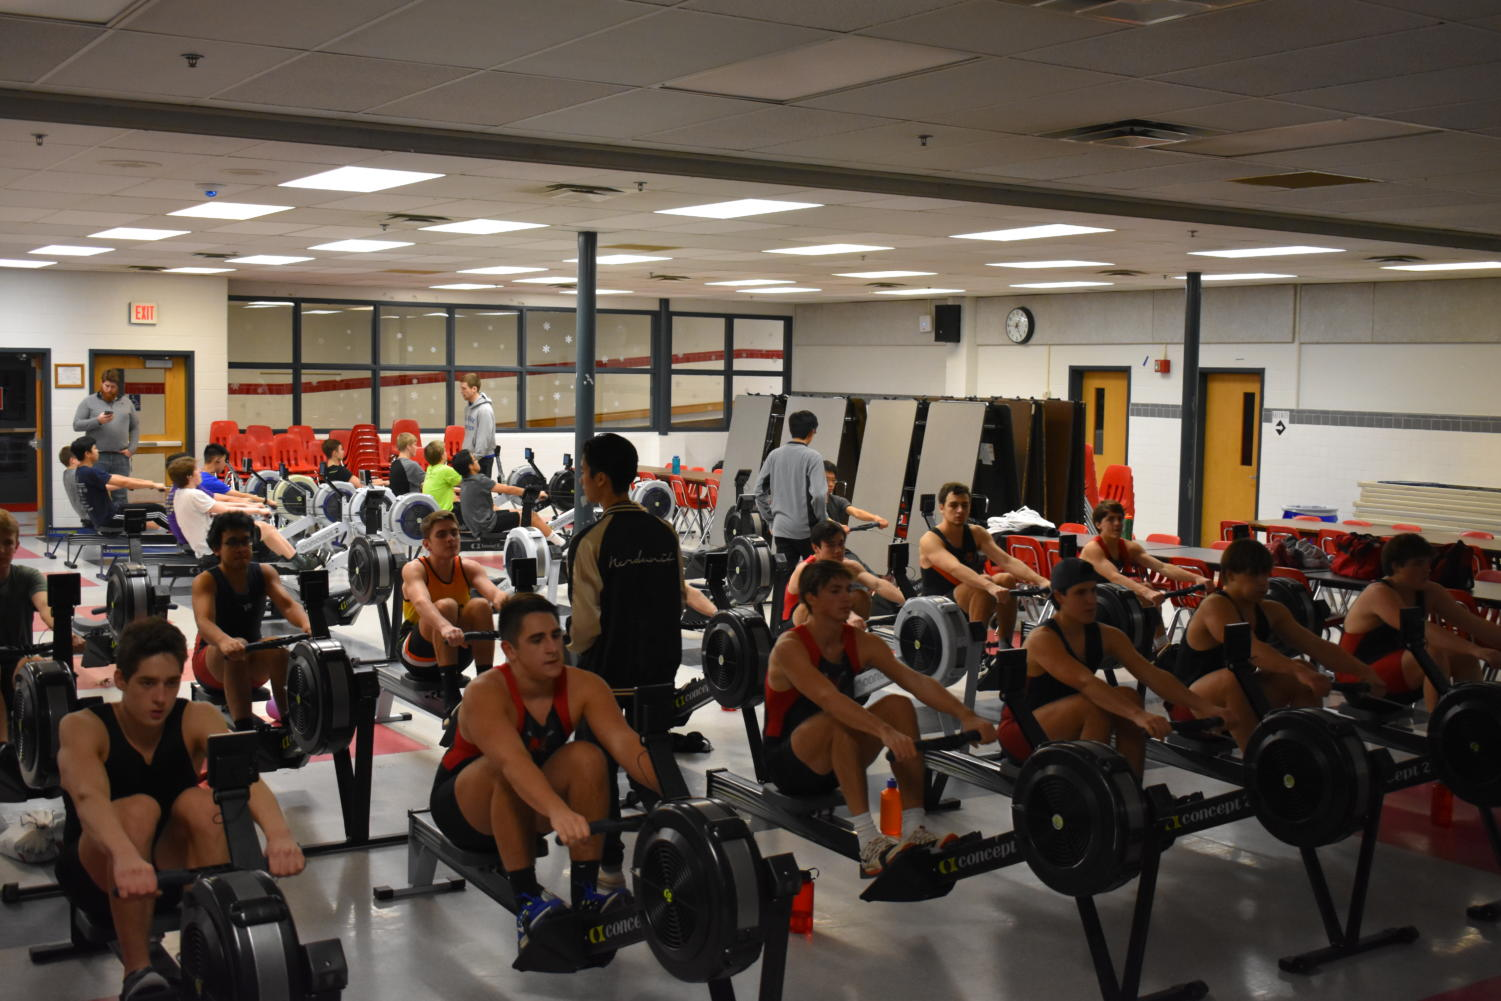 On a Monday afternoon, the McLean Men's Crew team brings the ergs into the cafeteria to perform pieces. Today, they are doing continuous rowing in 25 minute pieces to increase endurance.   Photo by Sebastian Jimenez